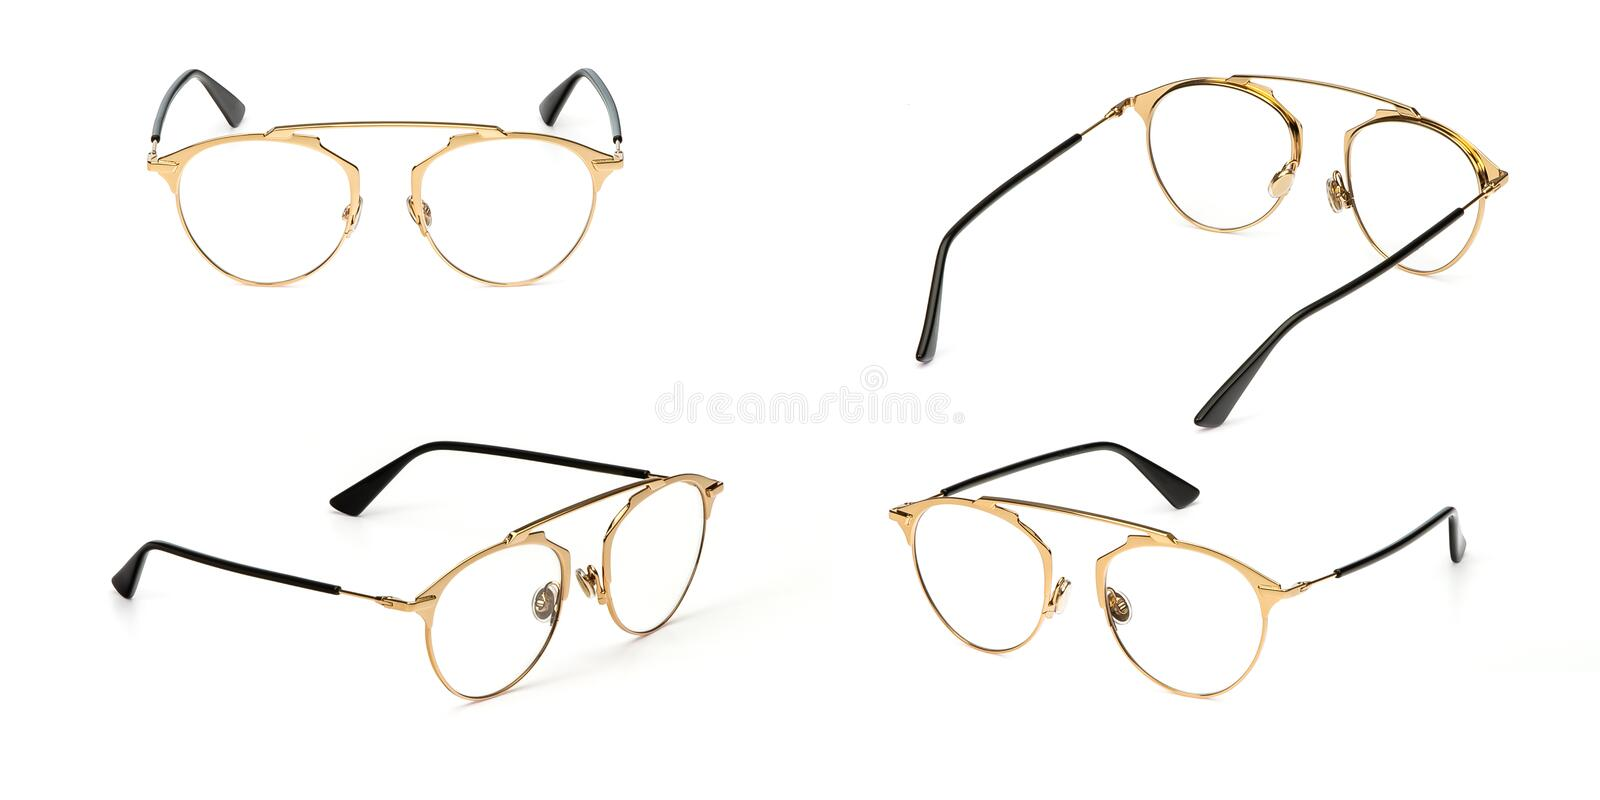 Set glasses gold metal material transparent isolated on white background. Collection fashion office eye glasses royalty free stock photography